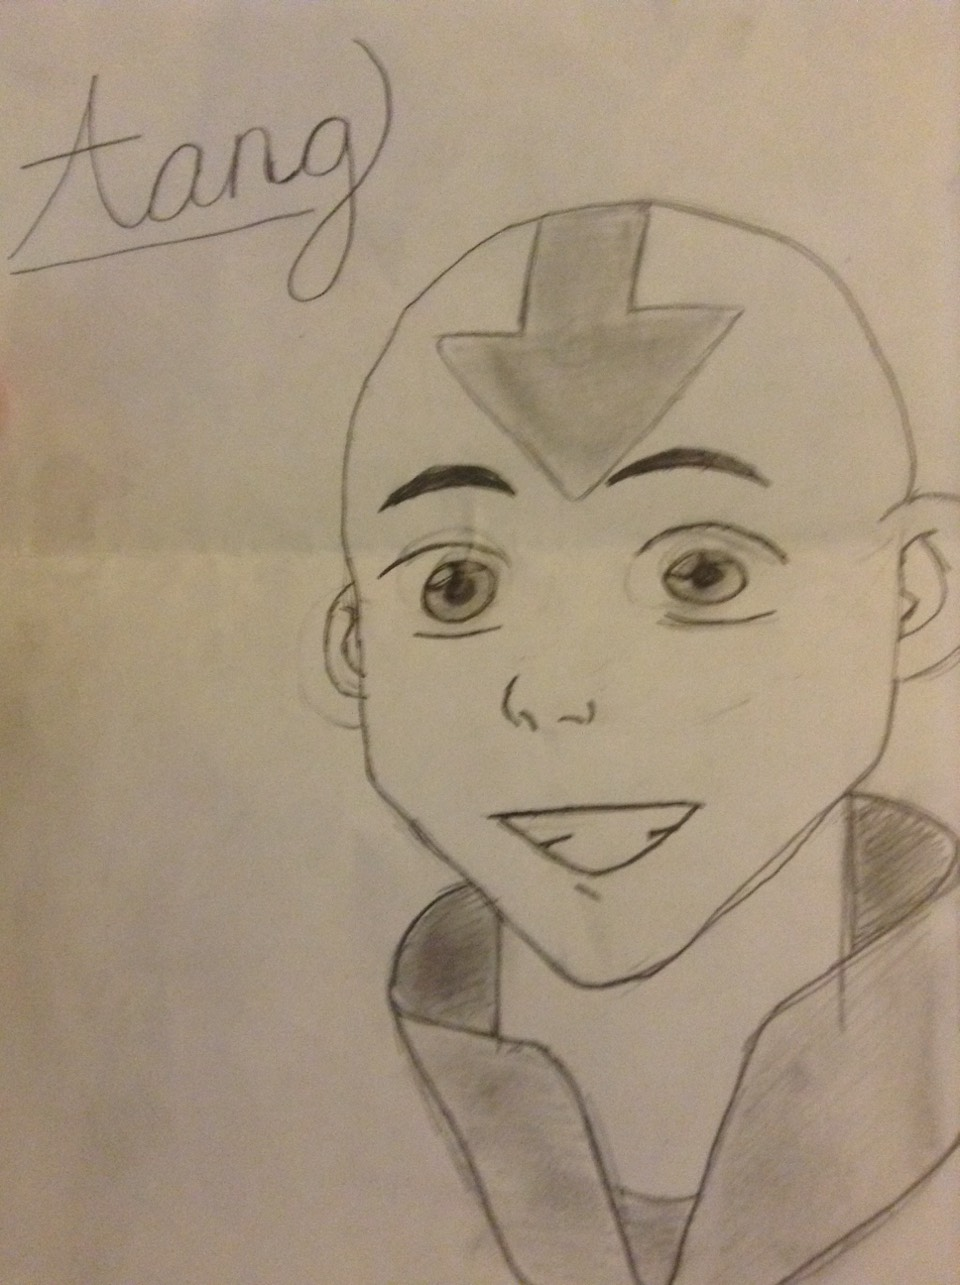 """This is Aang. He is the main character in the tv show """"the avatar"""""""